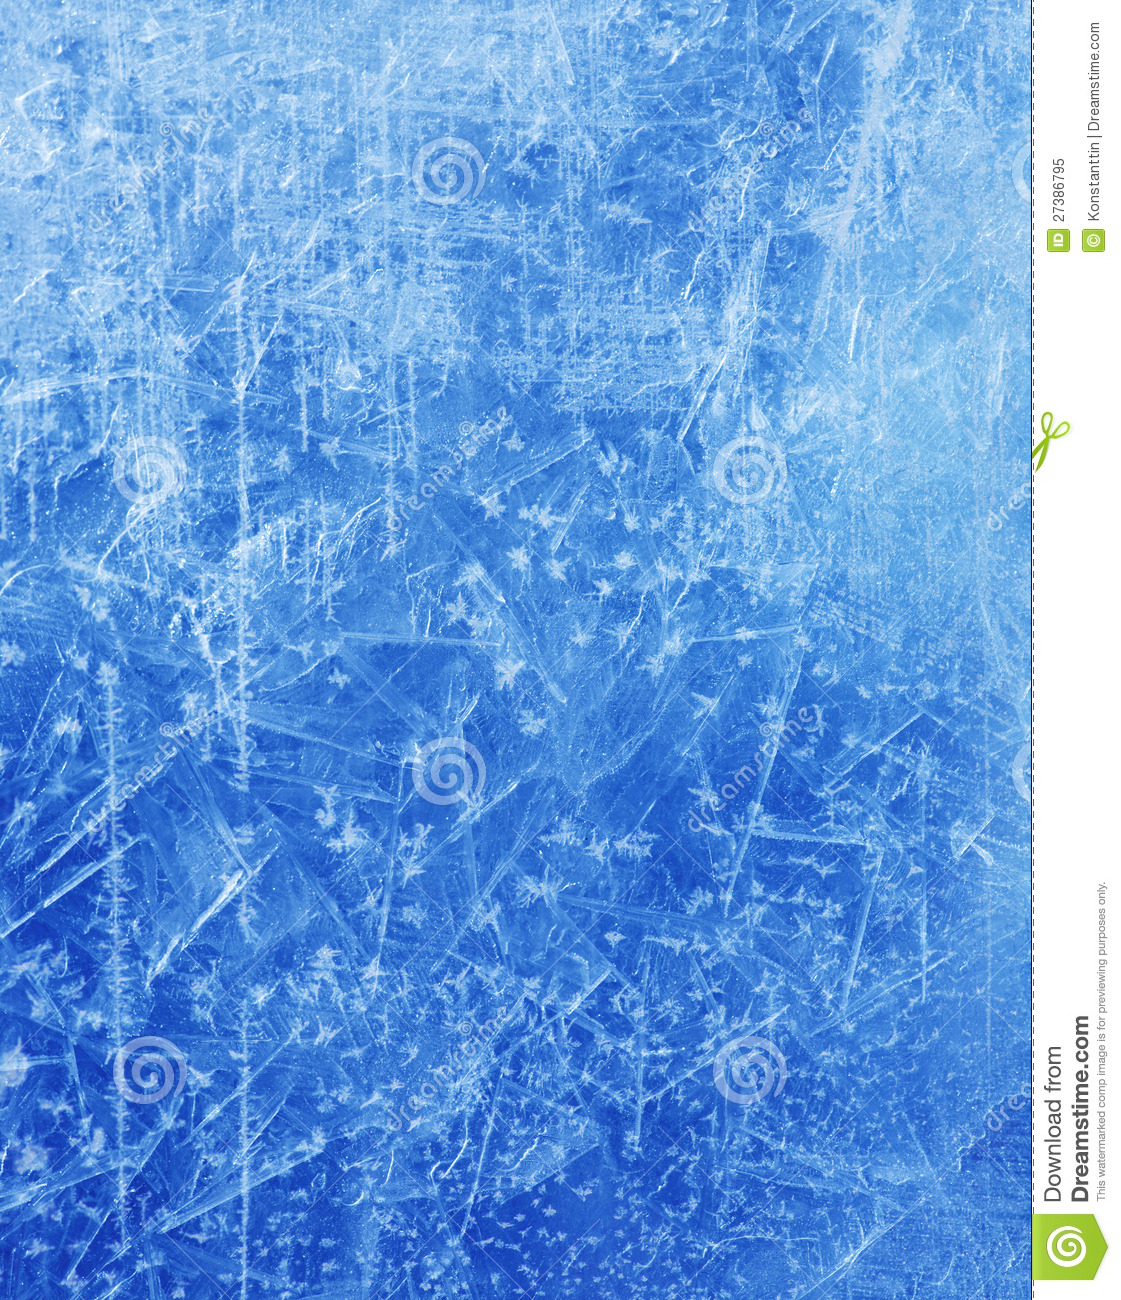 Abstract Christmas Ice Texture Winter Background Stock